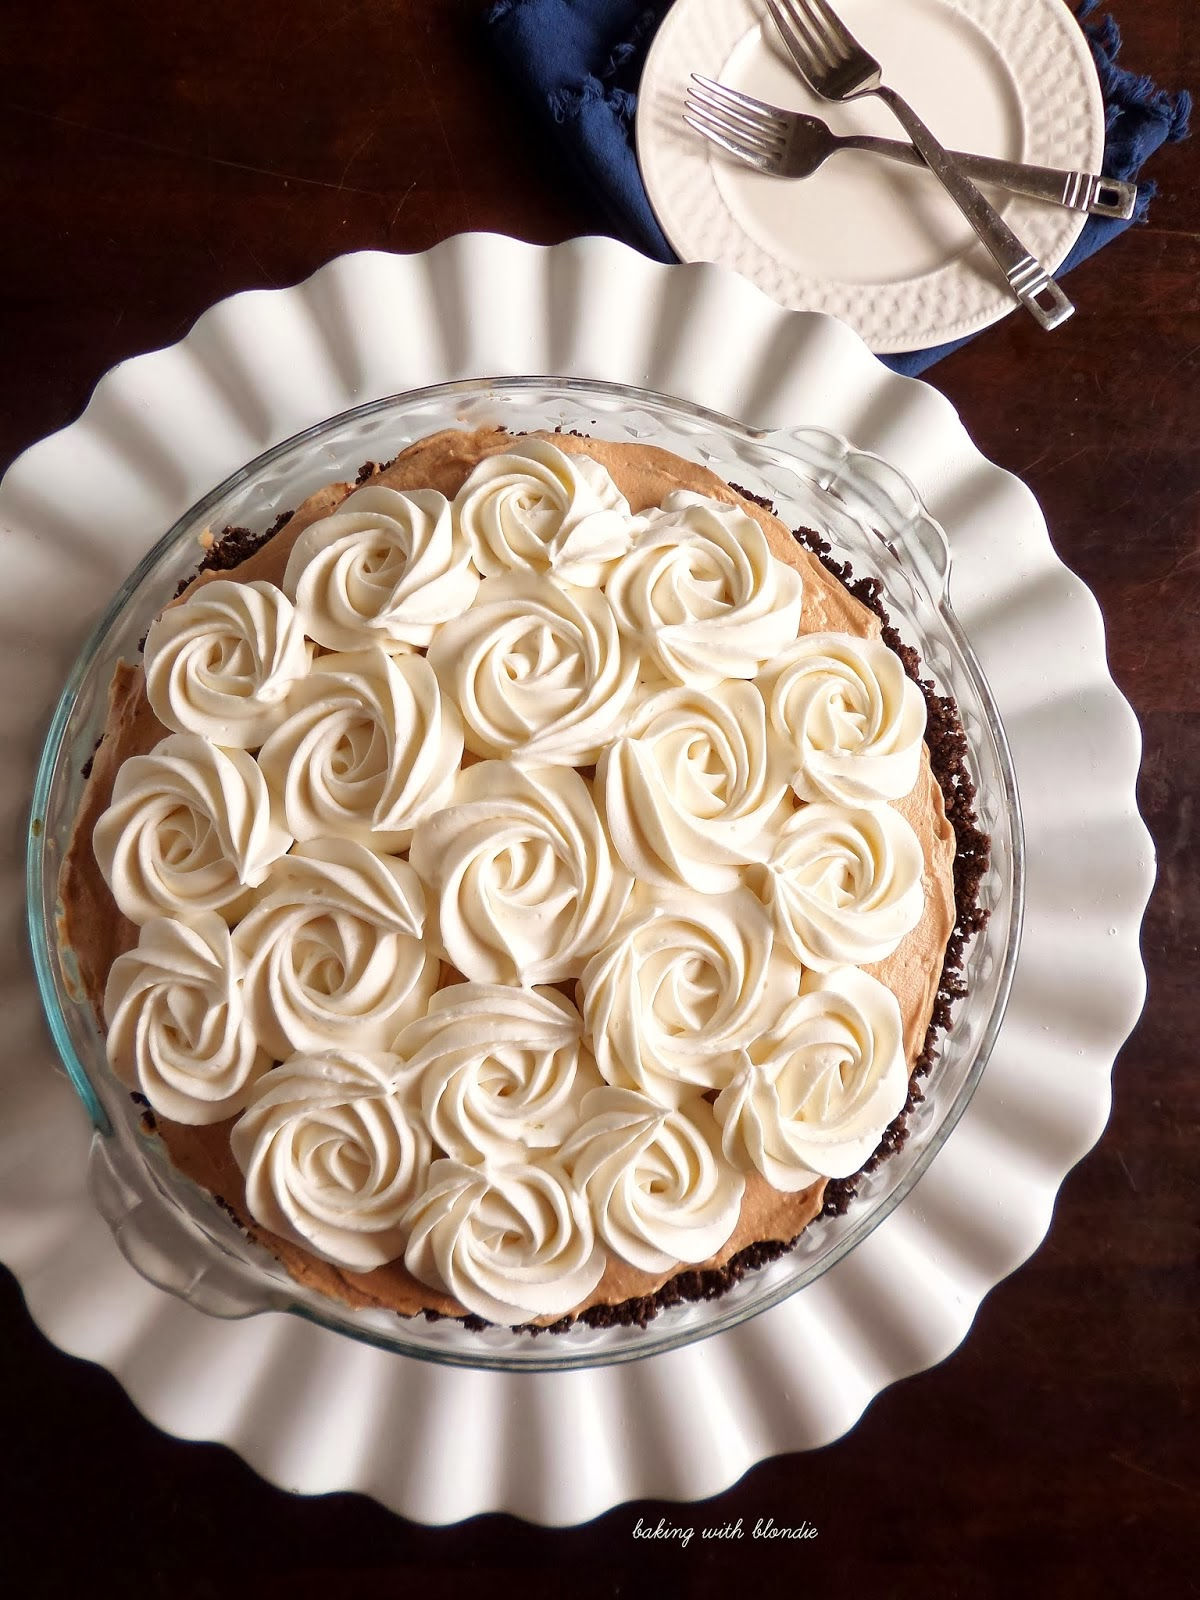 French Silk Chocolate Pie with Whipped Cream Rosettes and Thin Mint Crust